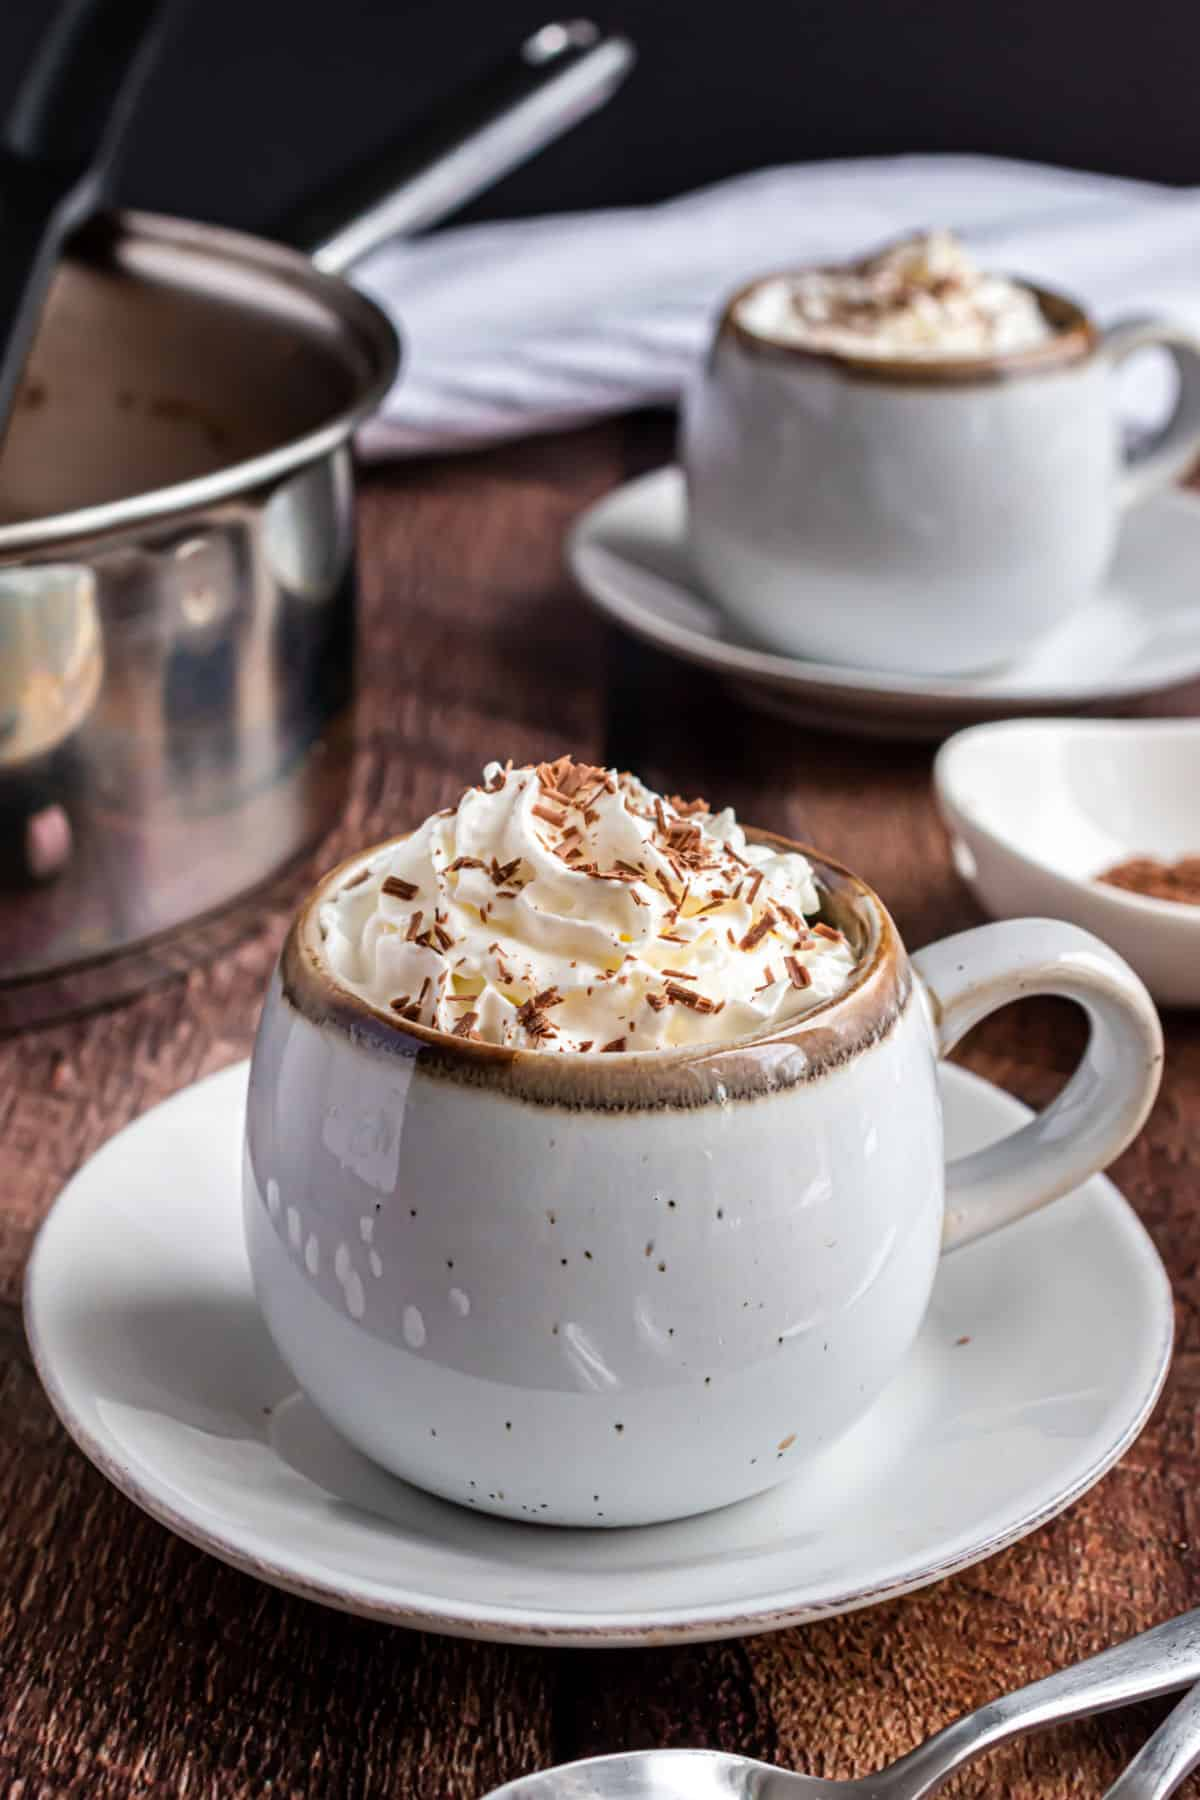 Hot chocolate with whipped cream in a ceramic white mug.